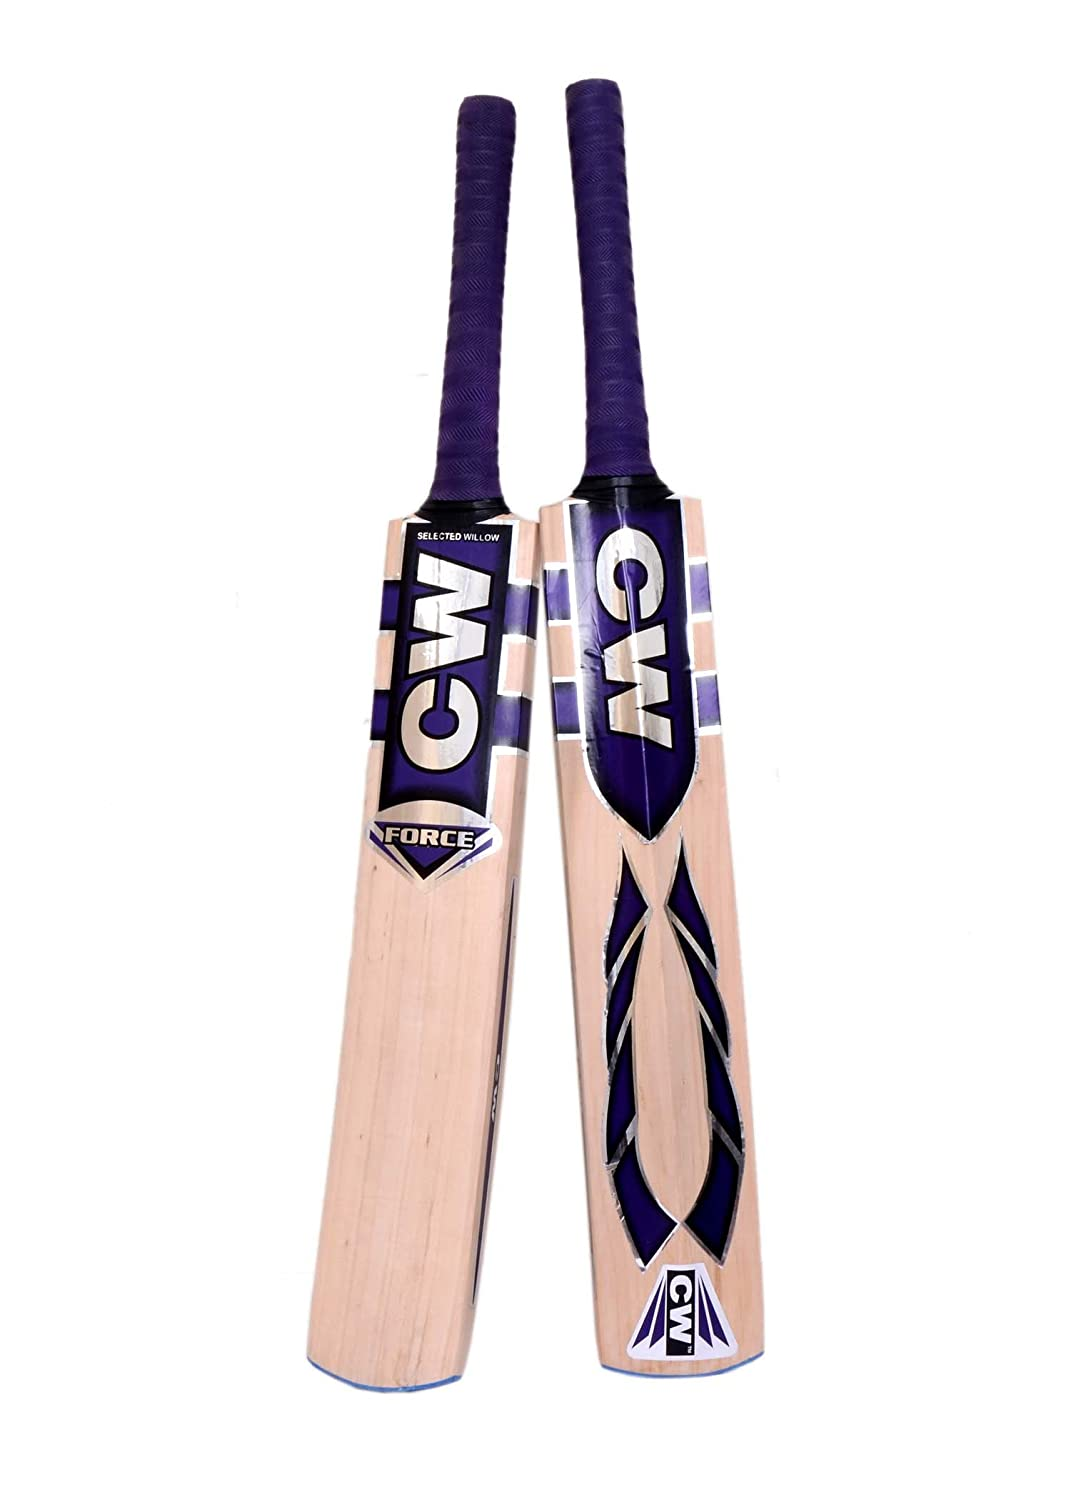 Force Kashmir Willow Leather Ball Cricket Bat, Exclusive Cricket Bat for Adult Full Size with Full Predection Cover